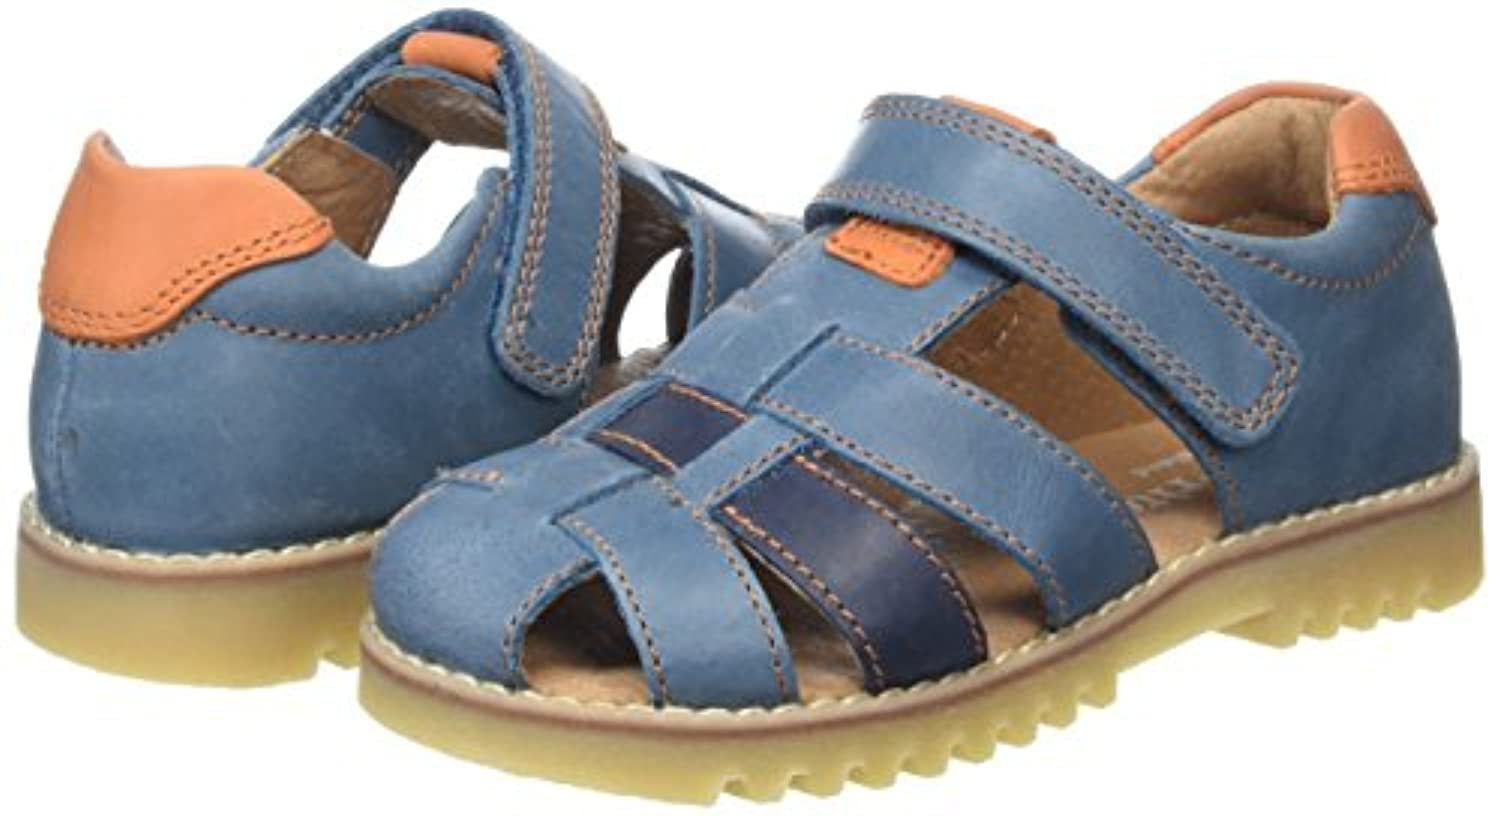 Start-rite Climb, Boys' Closed Toe Sandals, Blue (Blue), 4 Child UK (20 EU)